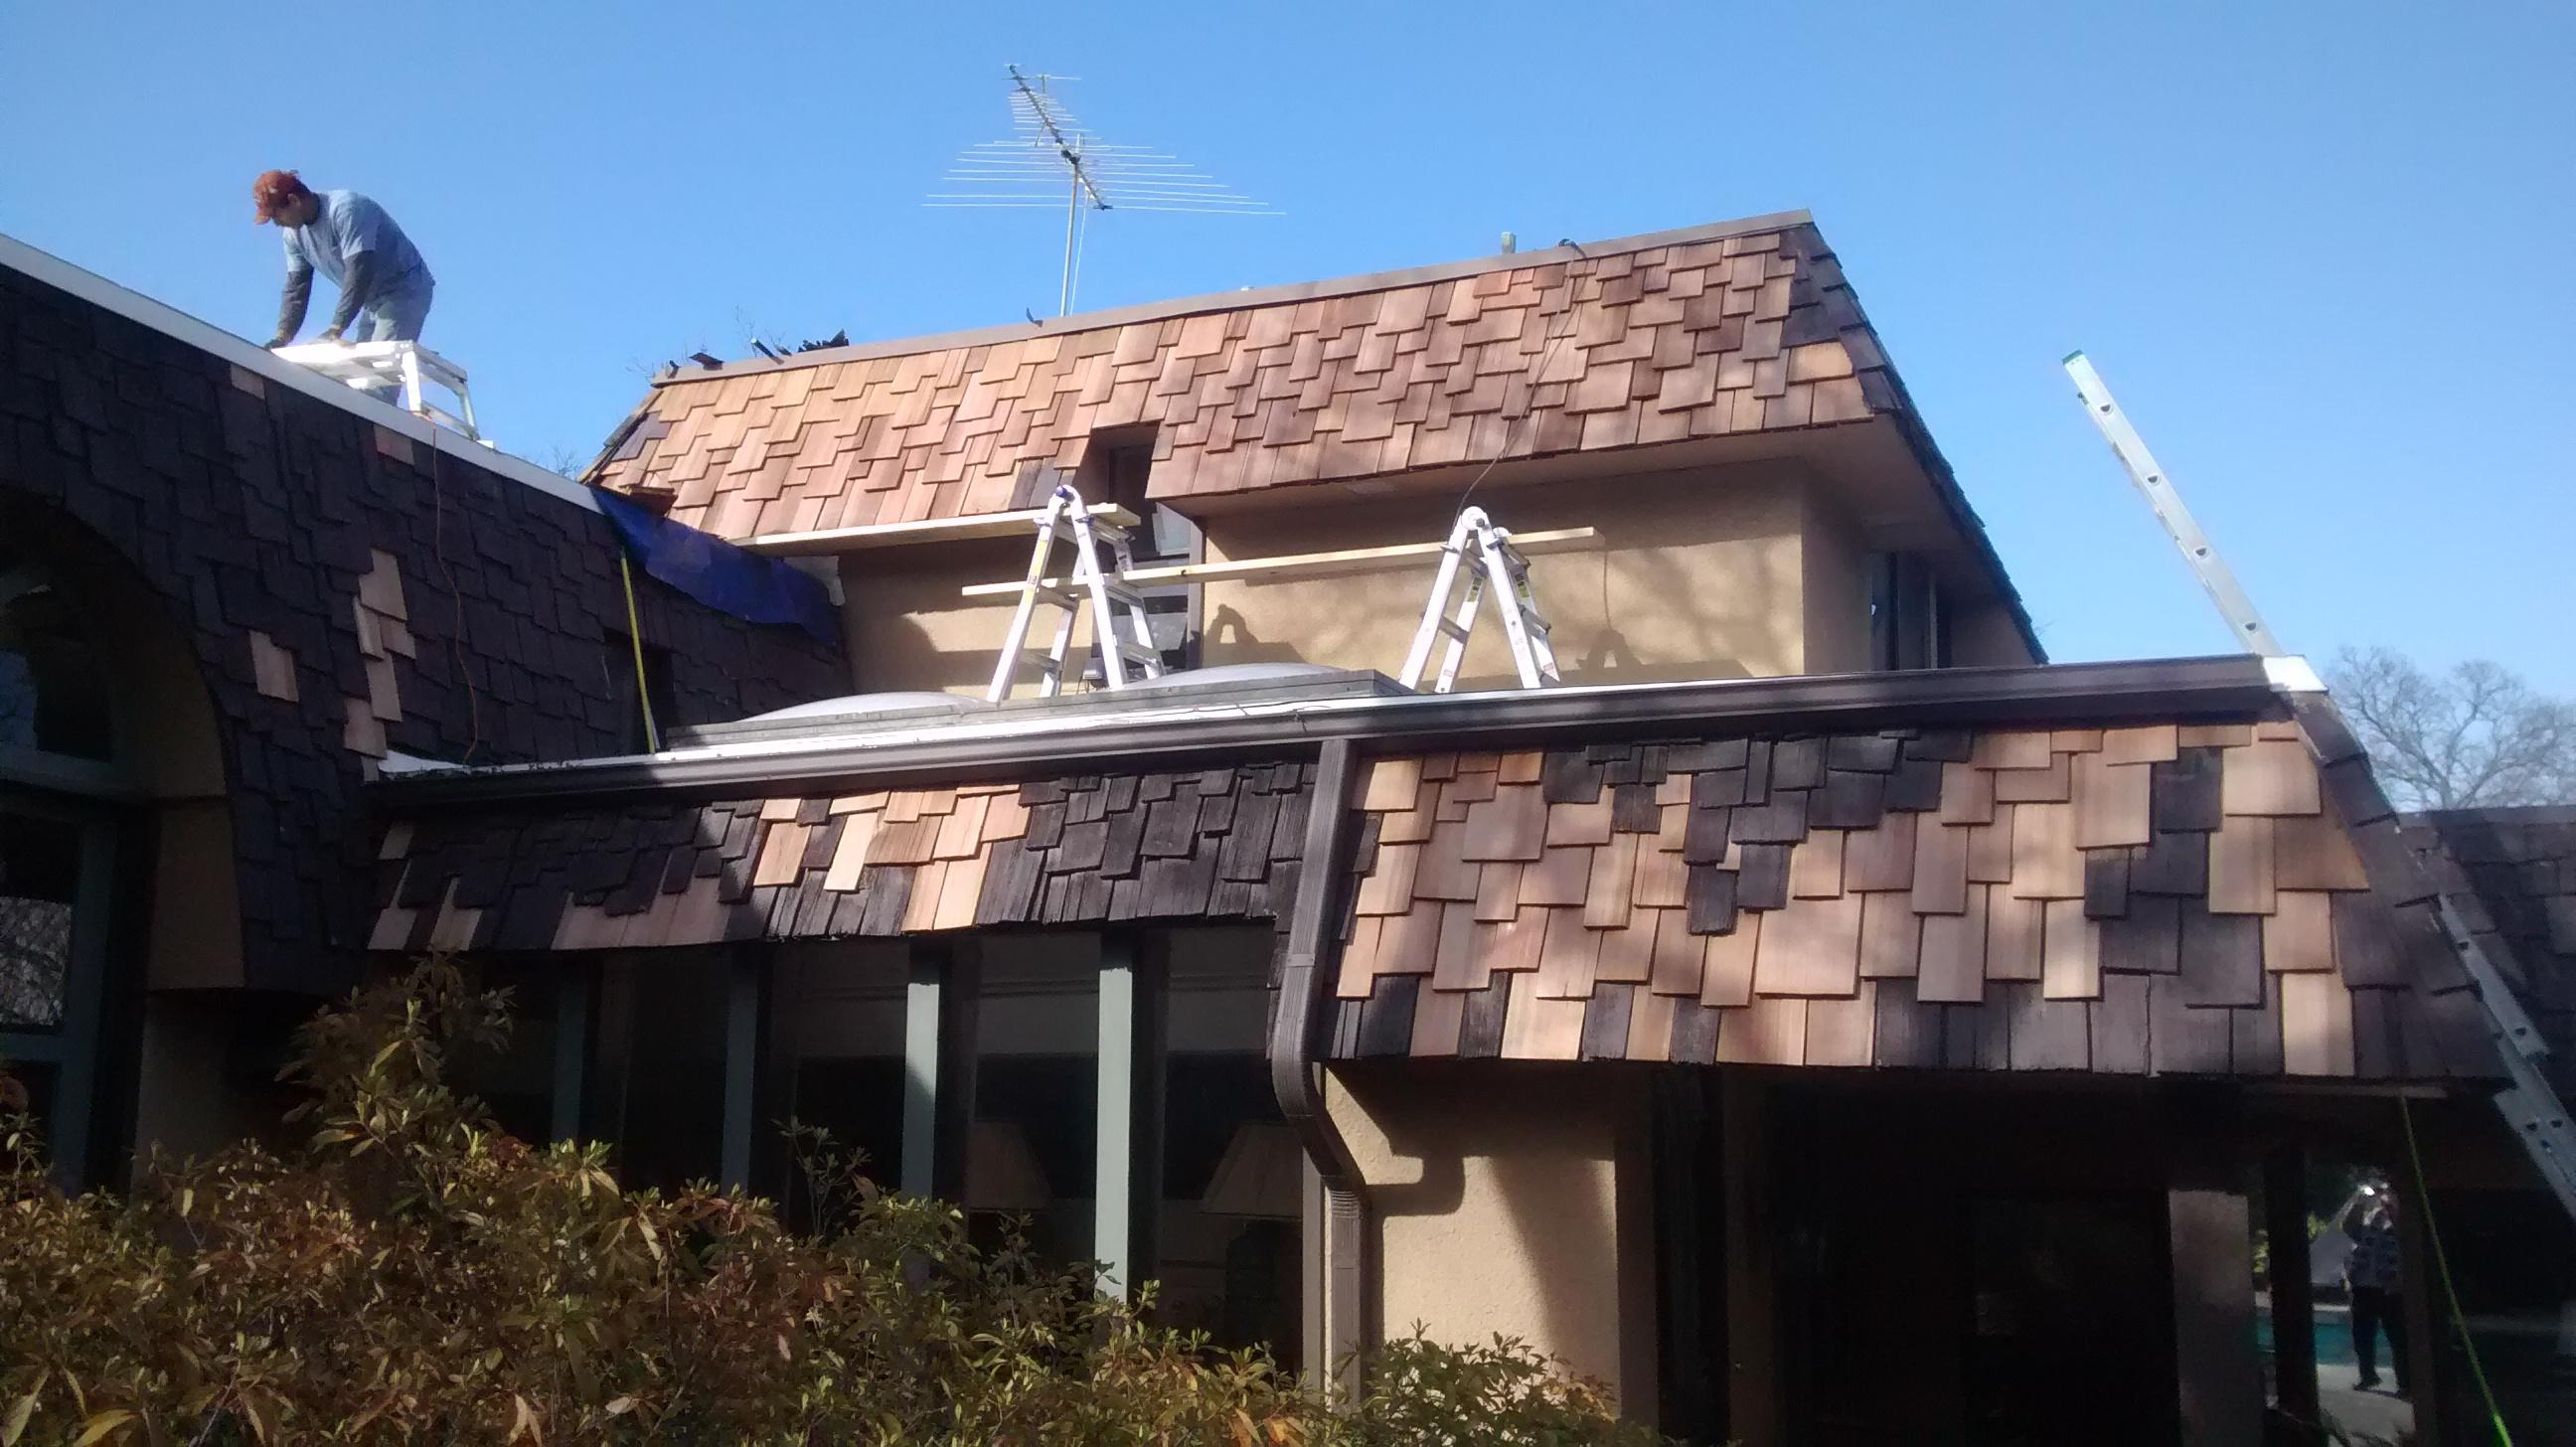 A Idea Roofing & Remodeling